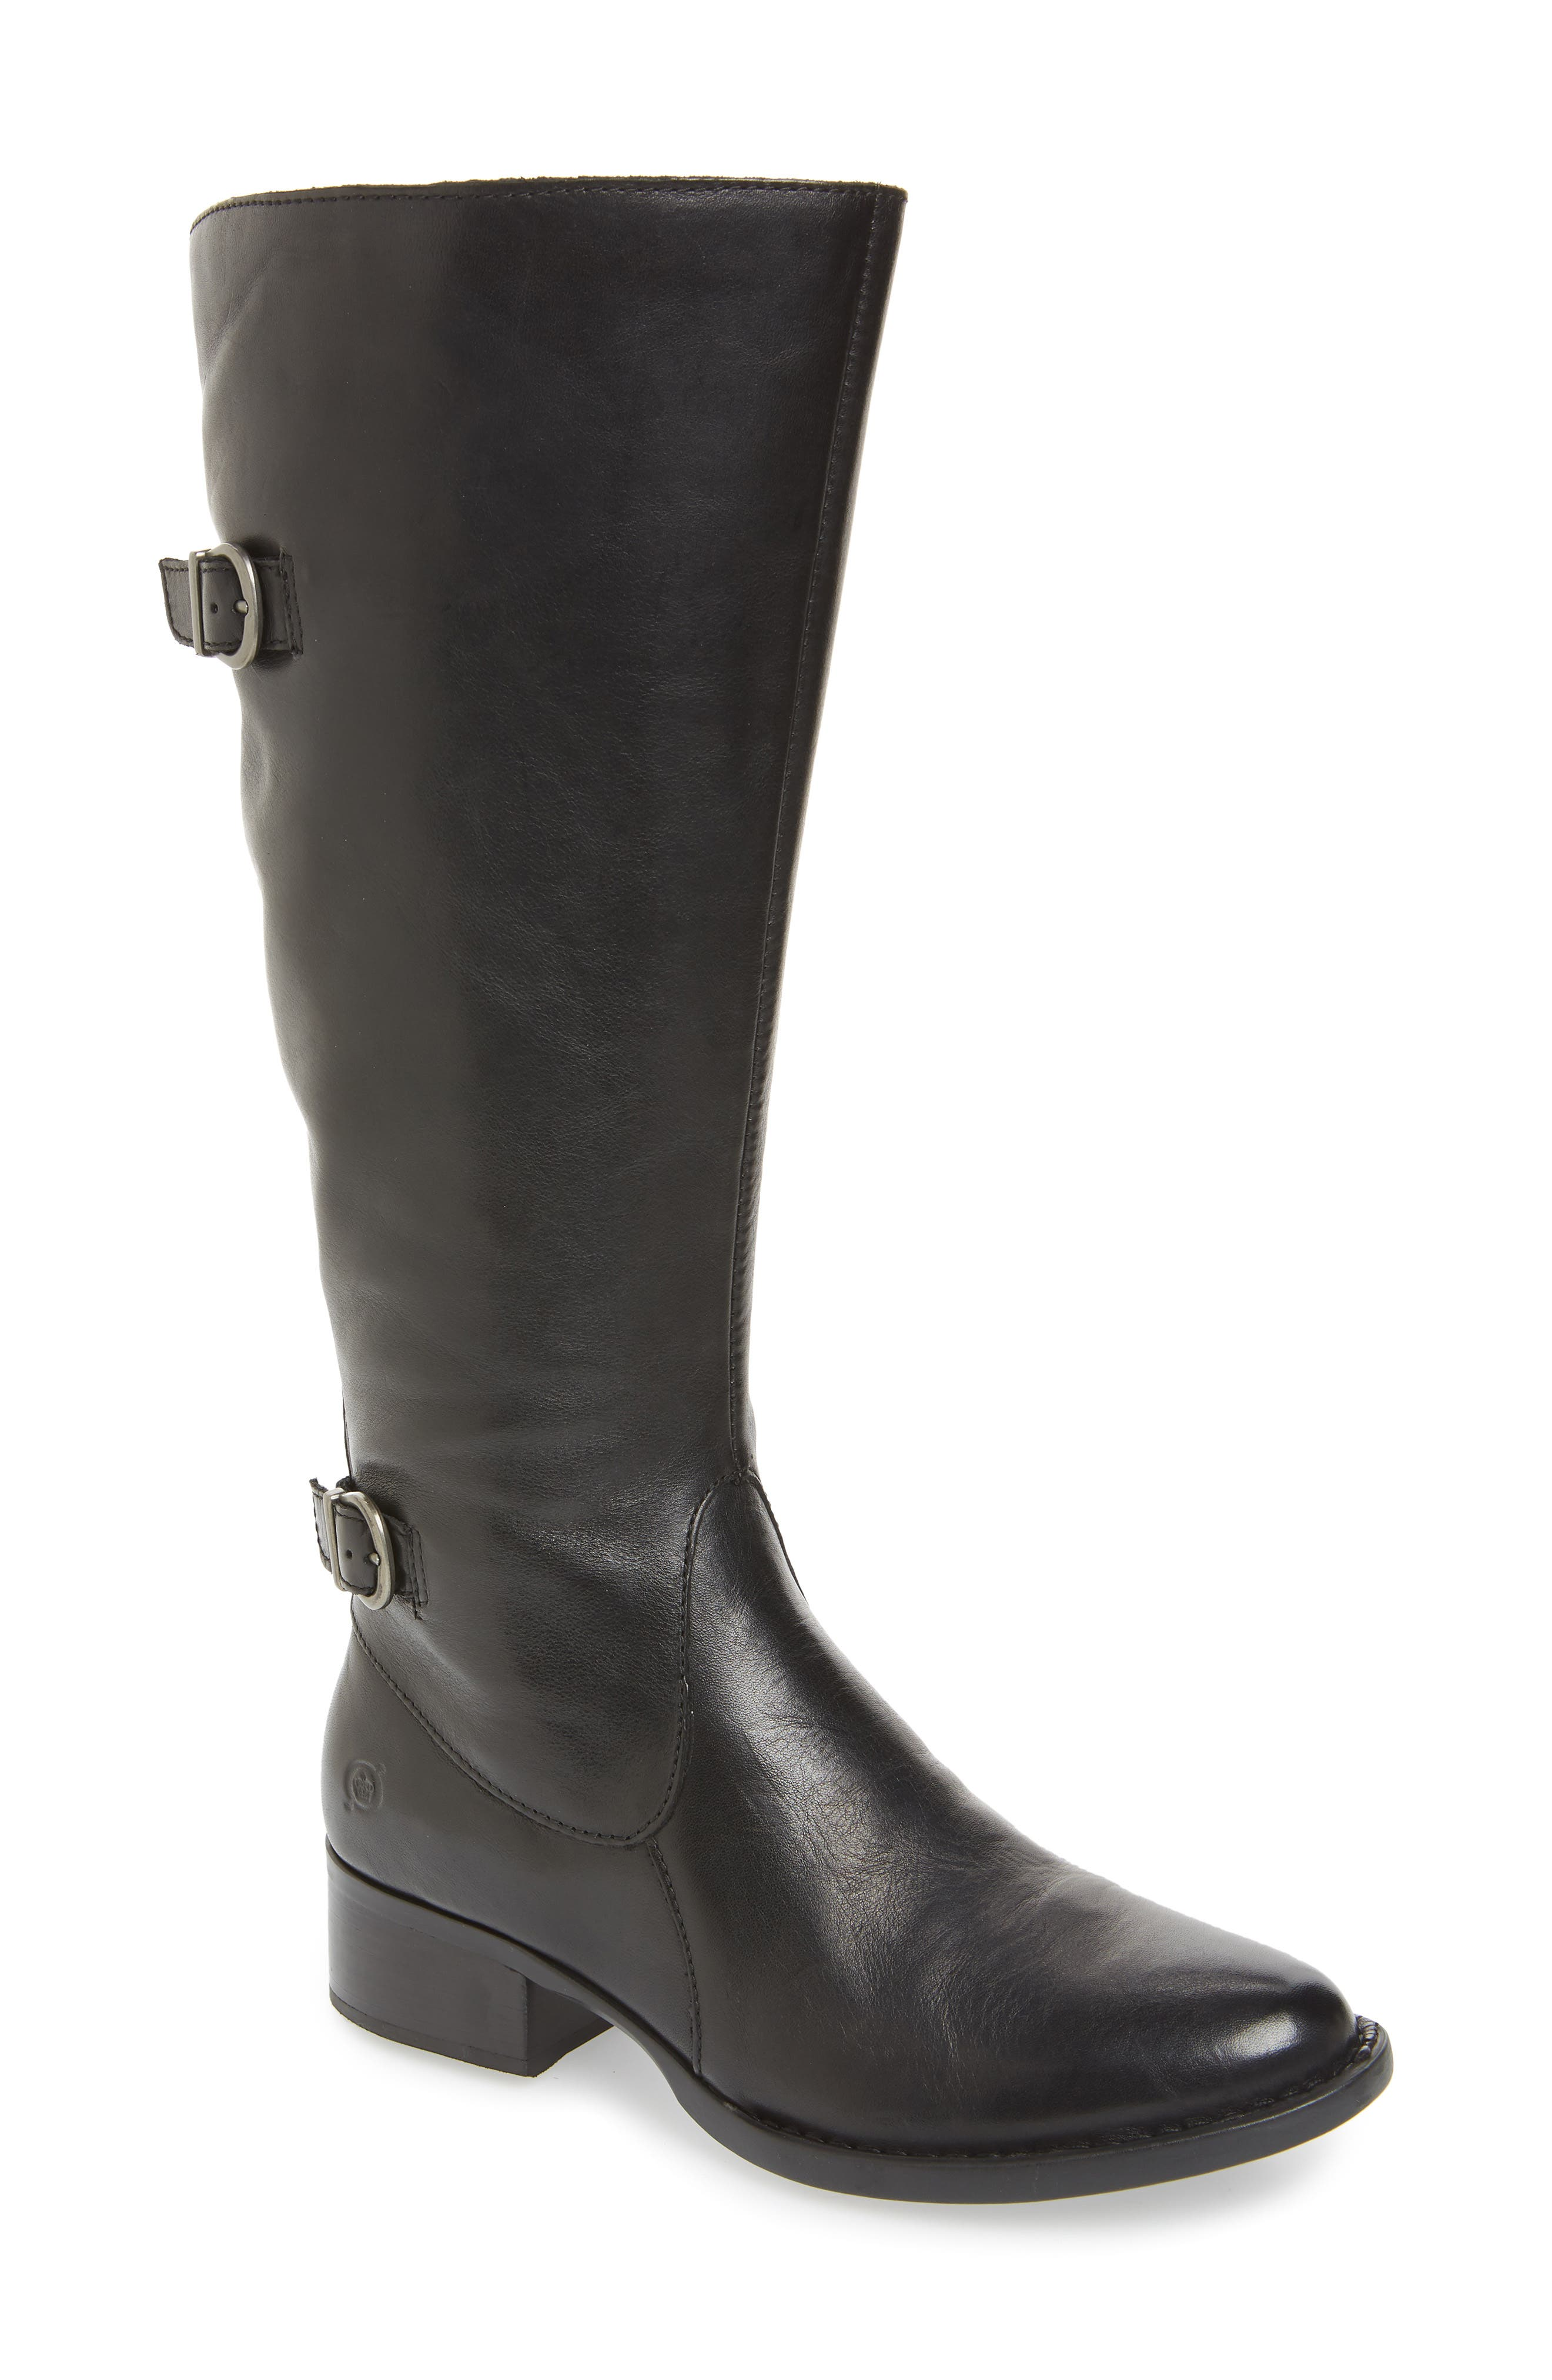 B?rn Gibb Knee High Riding Boot Wide Calf- Black